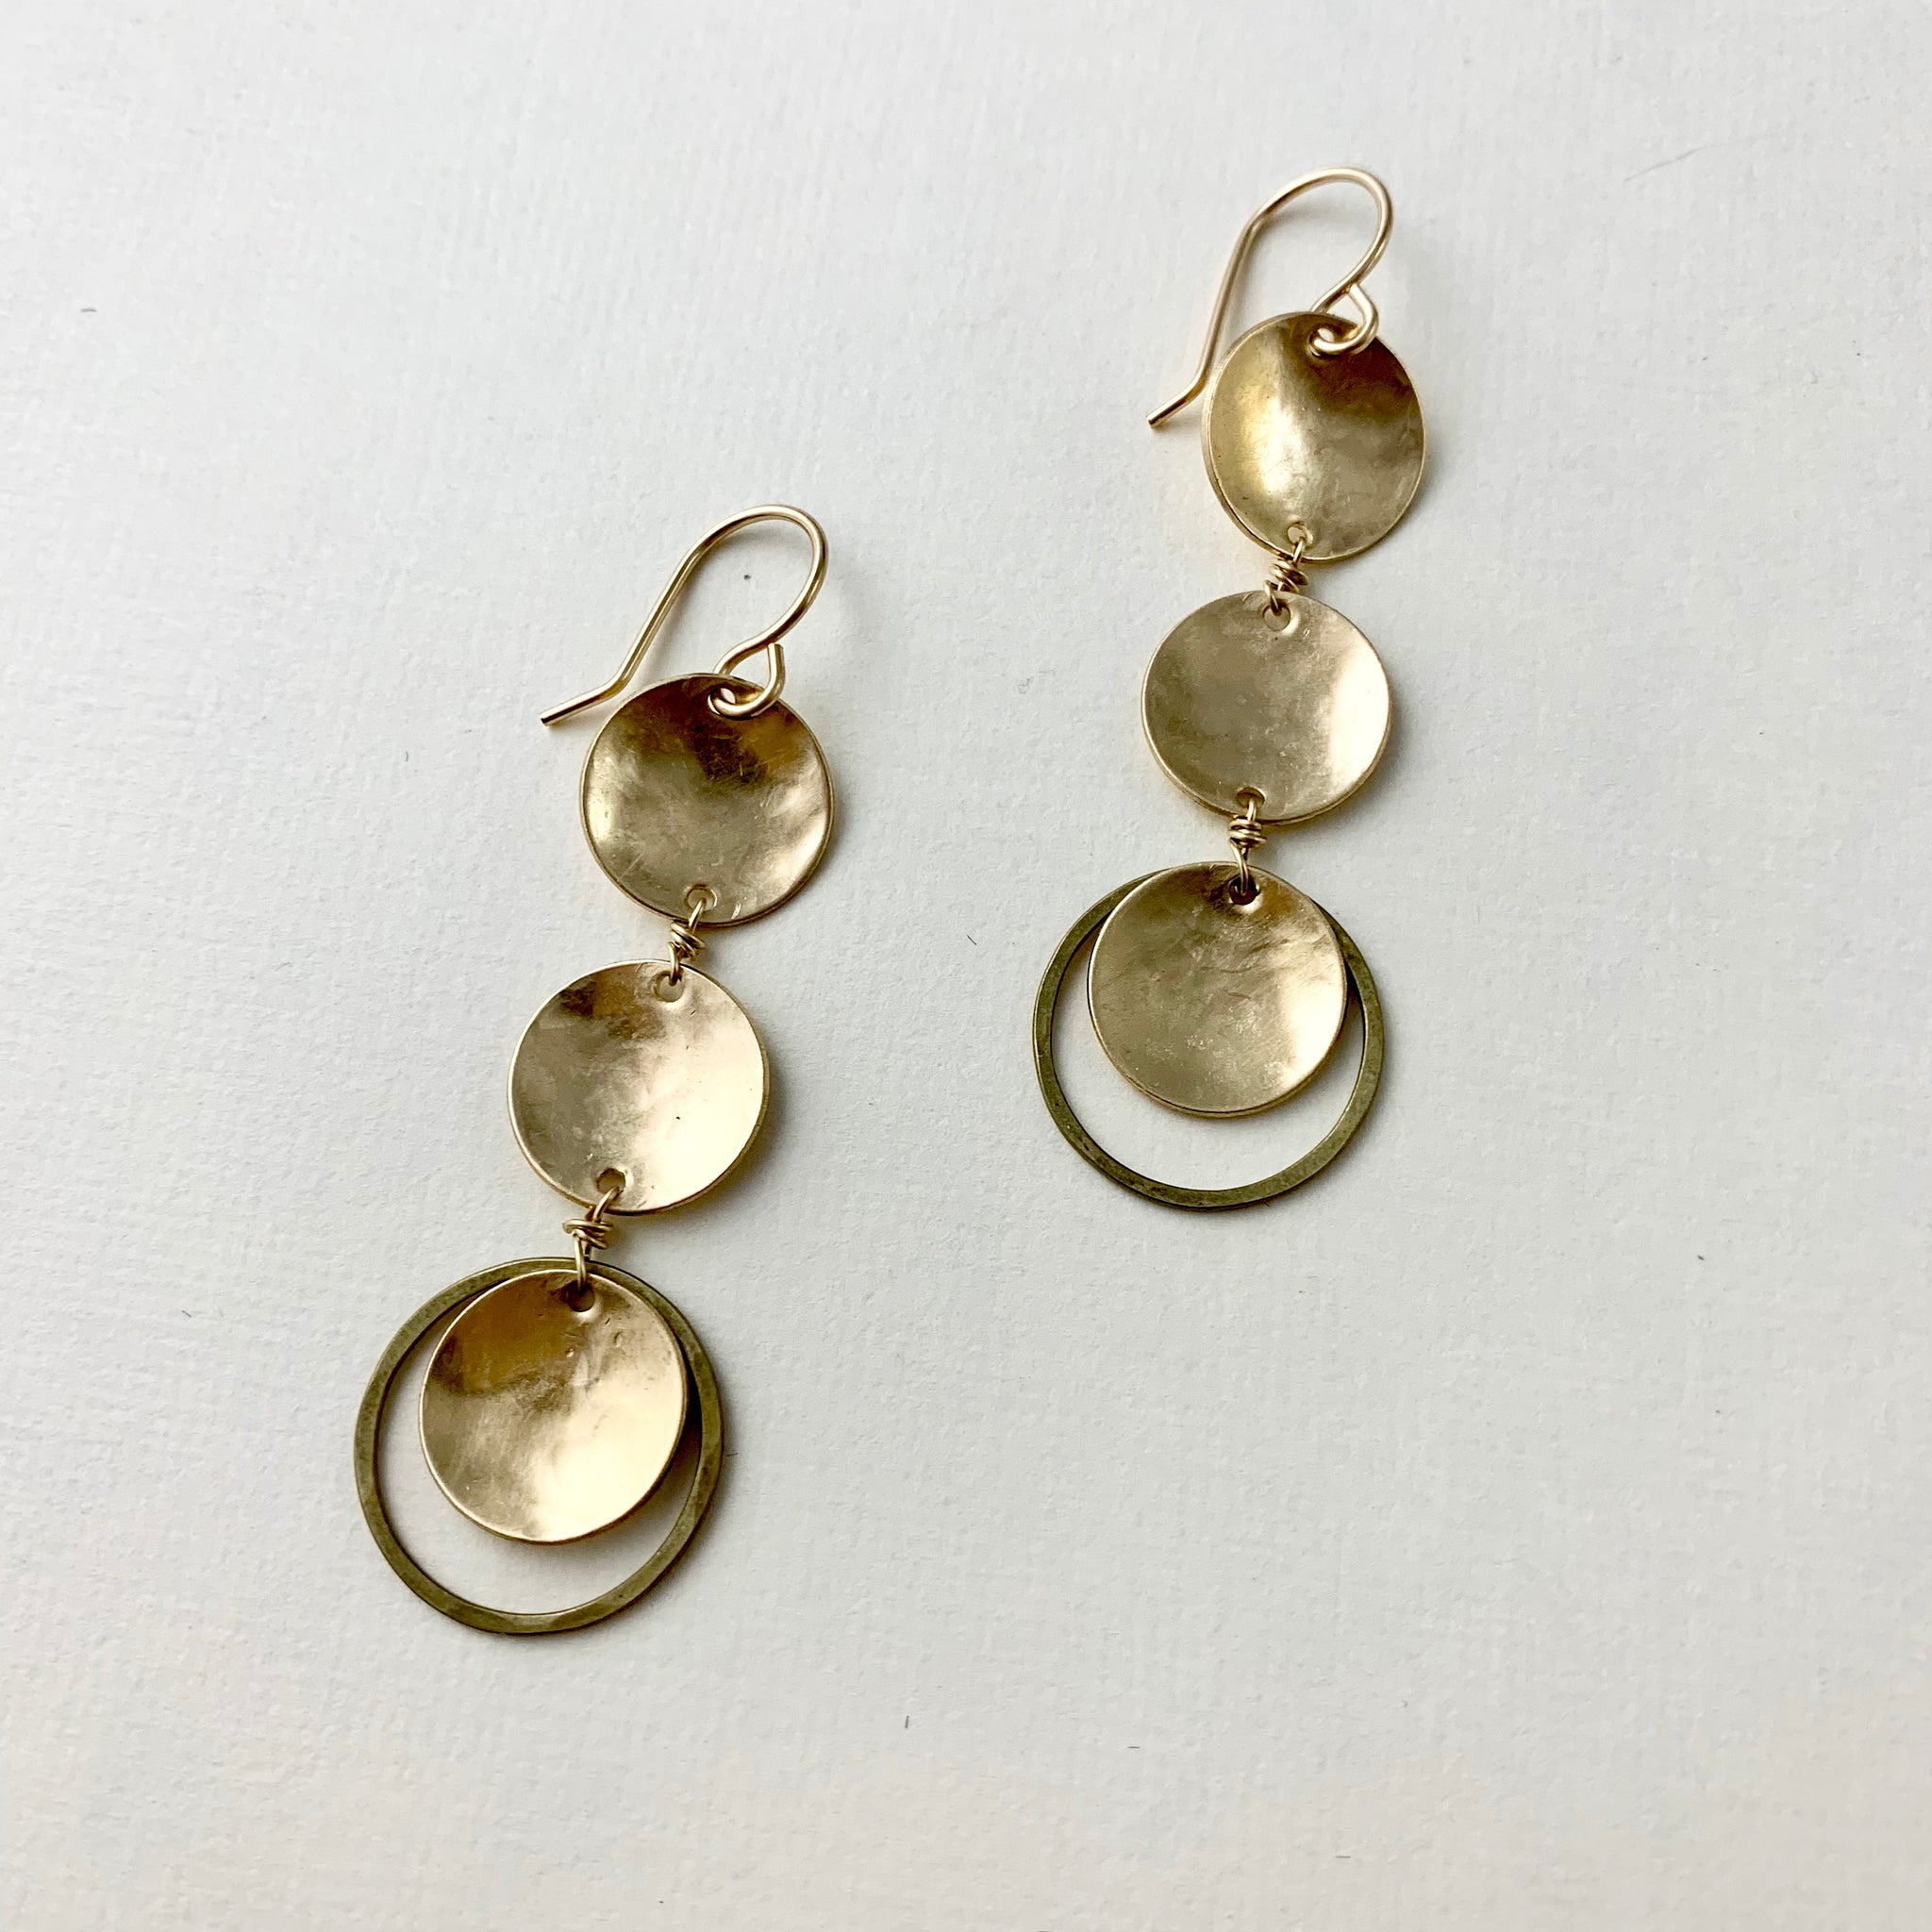 Rubble Earrings